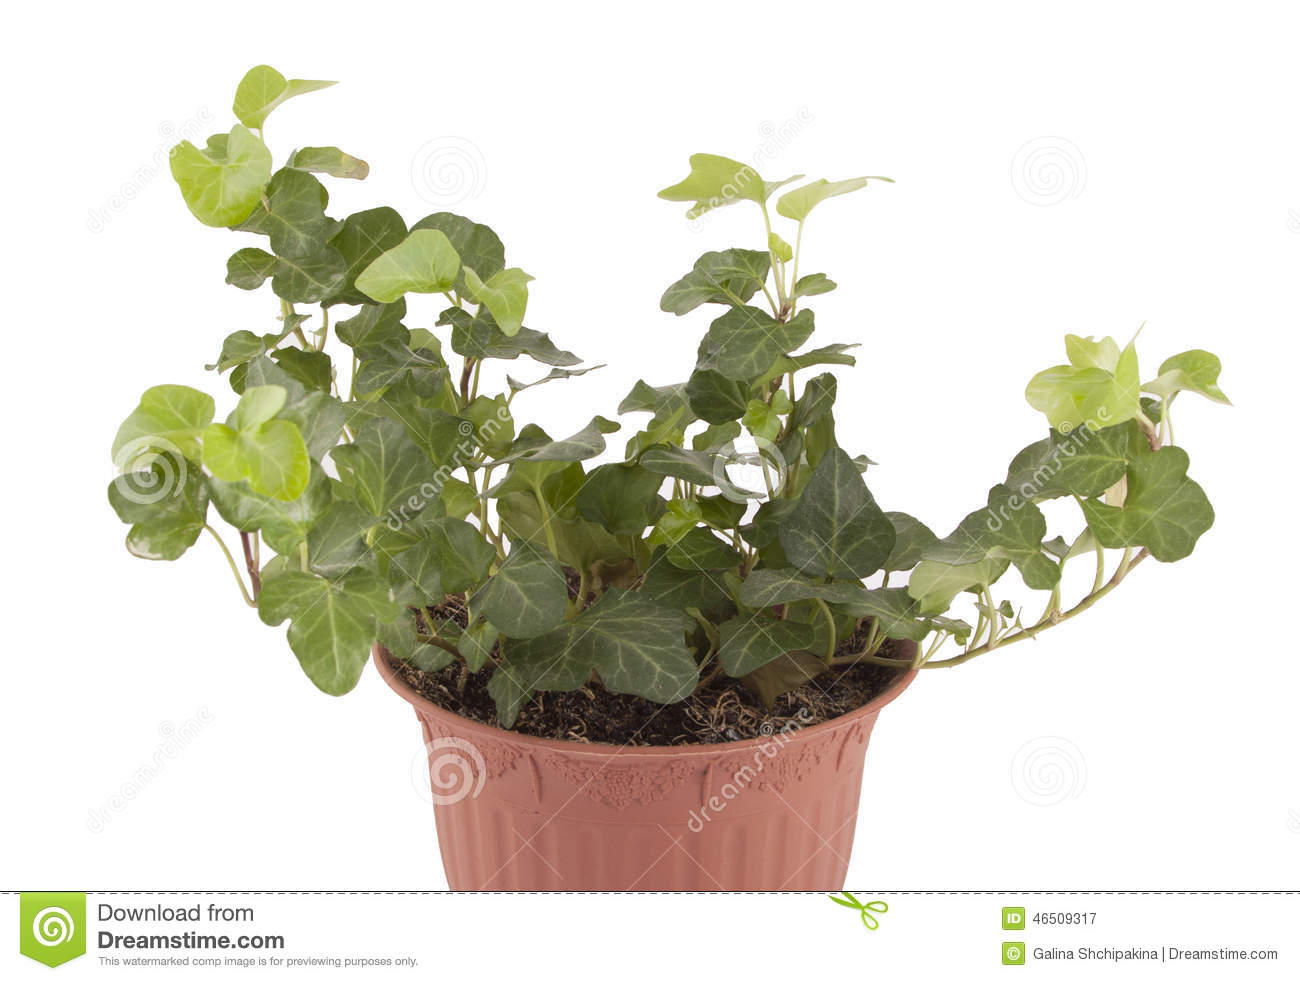 Lierre de plante d 39 int rieur photo stock image 46509317 - Plante d interieur photo ...